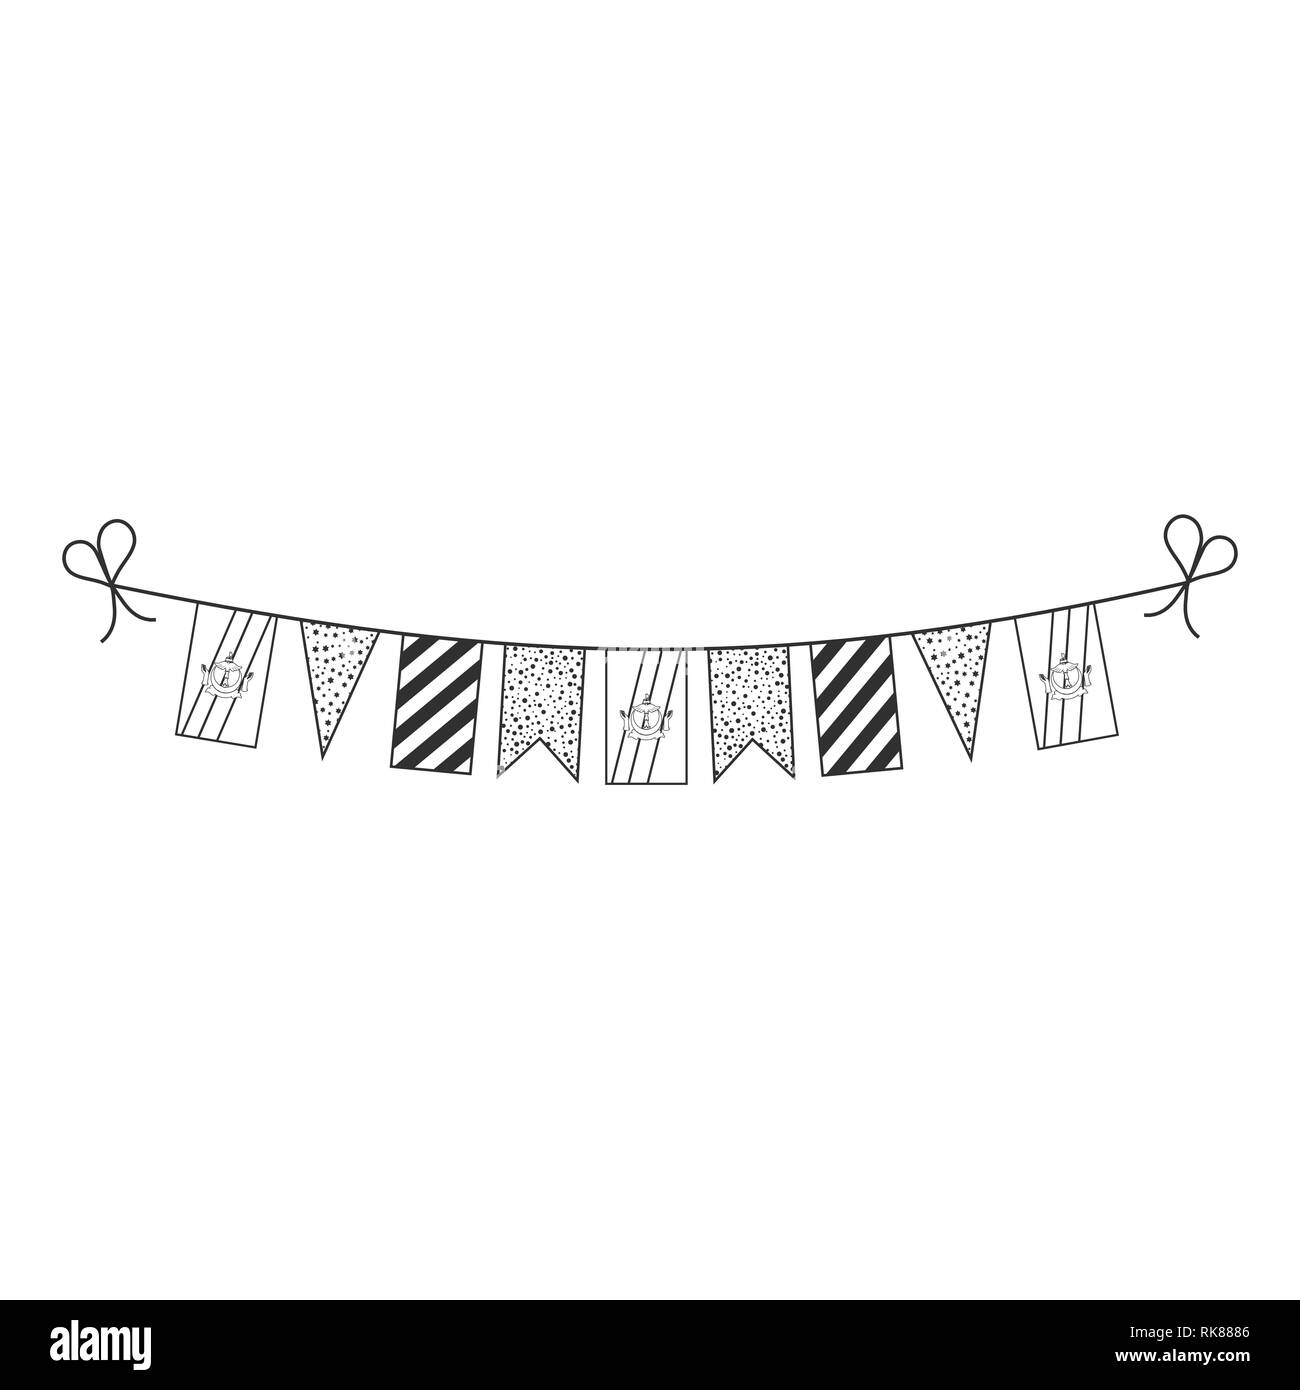 Decorations bunting flags for Brunei national day holiday in black outline flat design. Independence day or National day holiday concept. - Stock Image